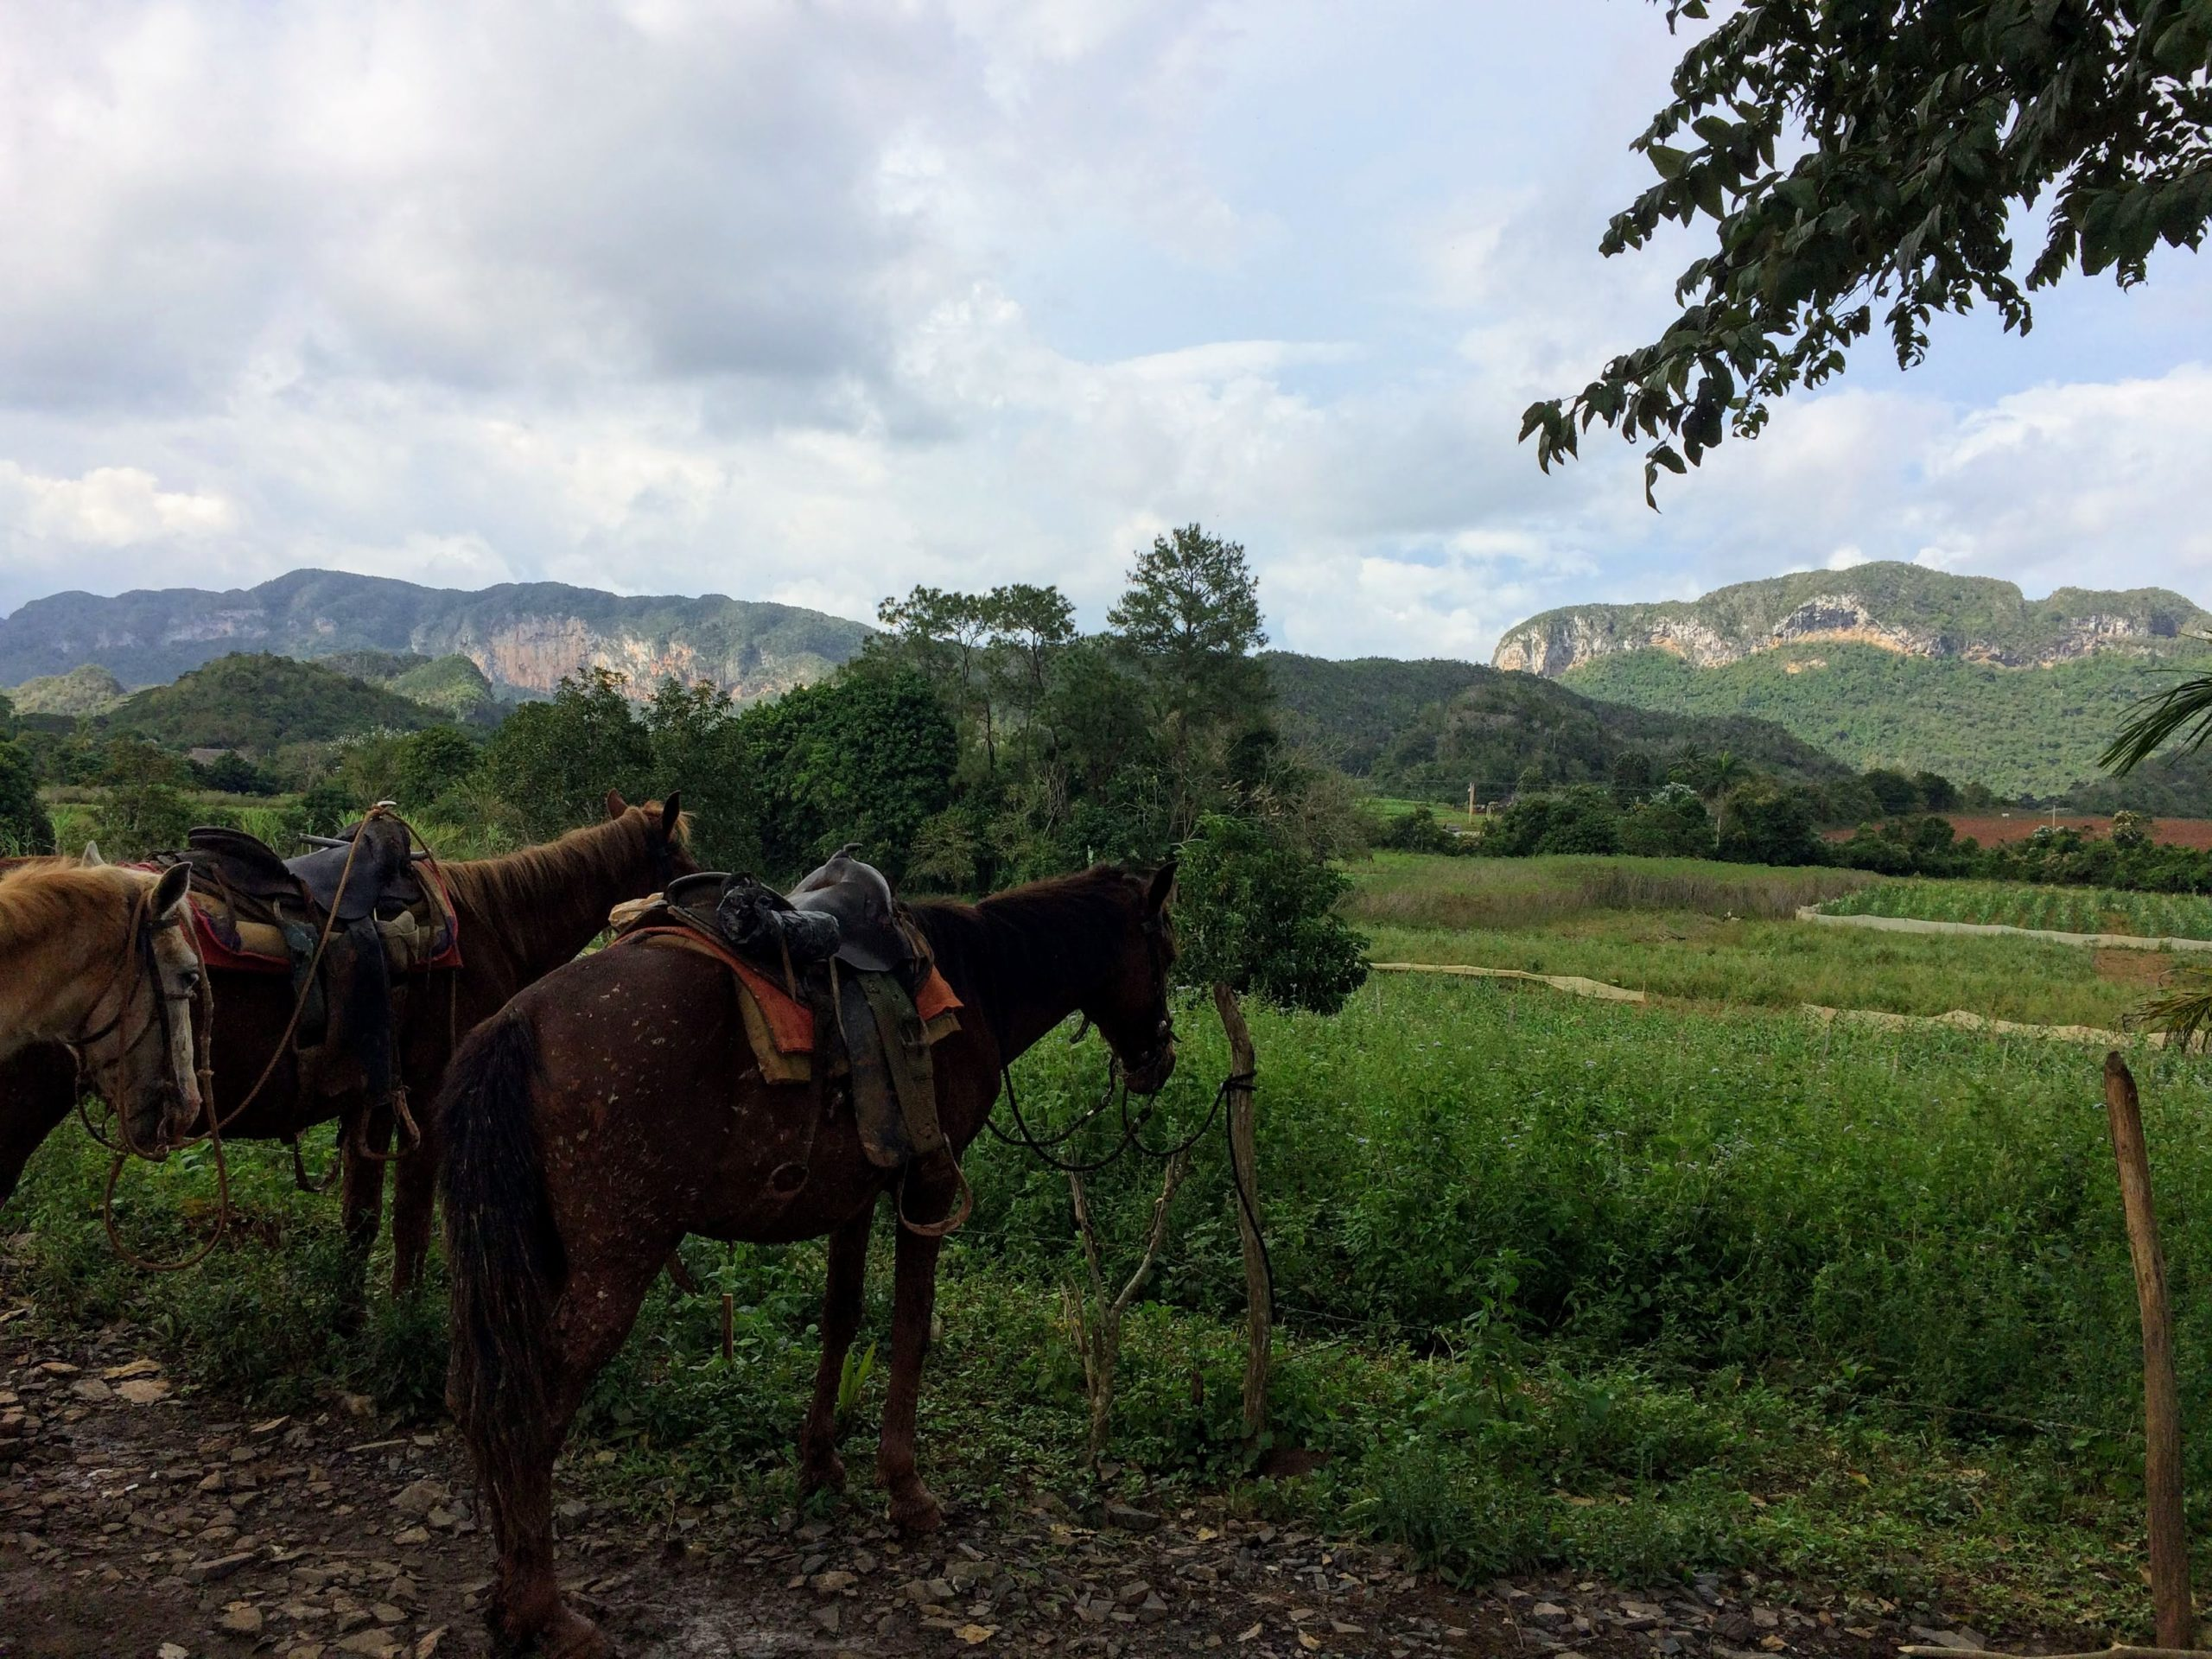 Horses with mountain in background in Vinales